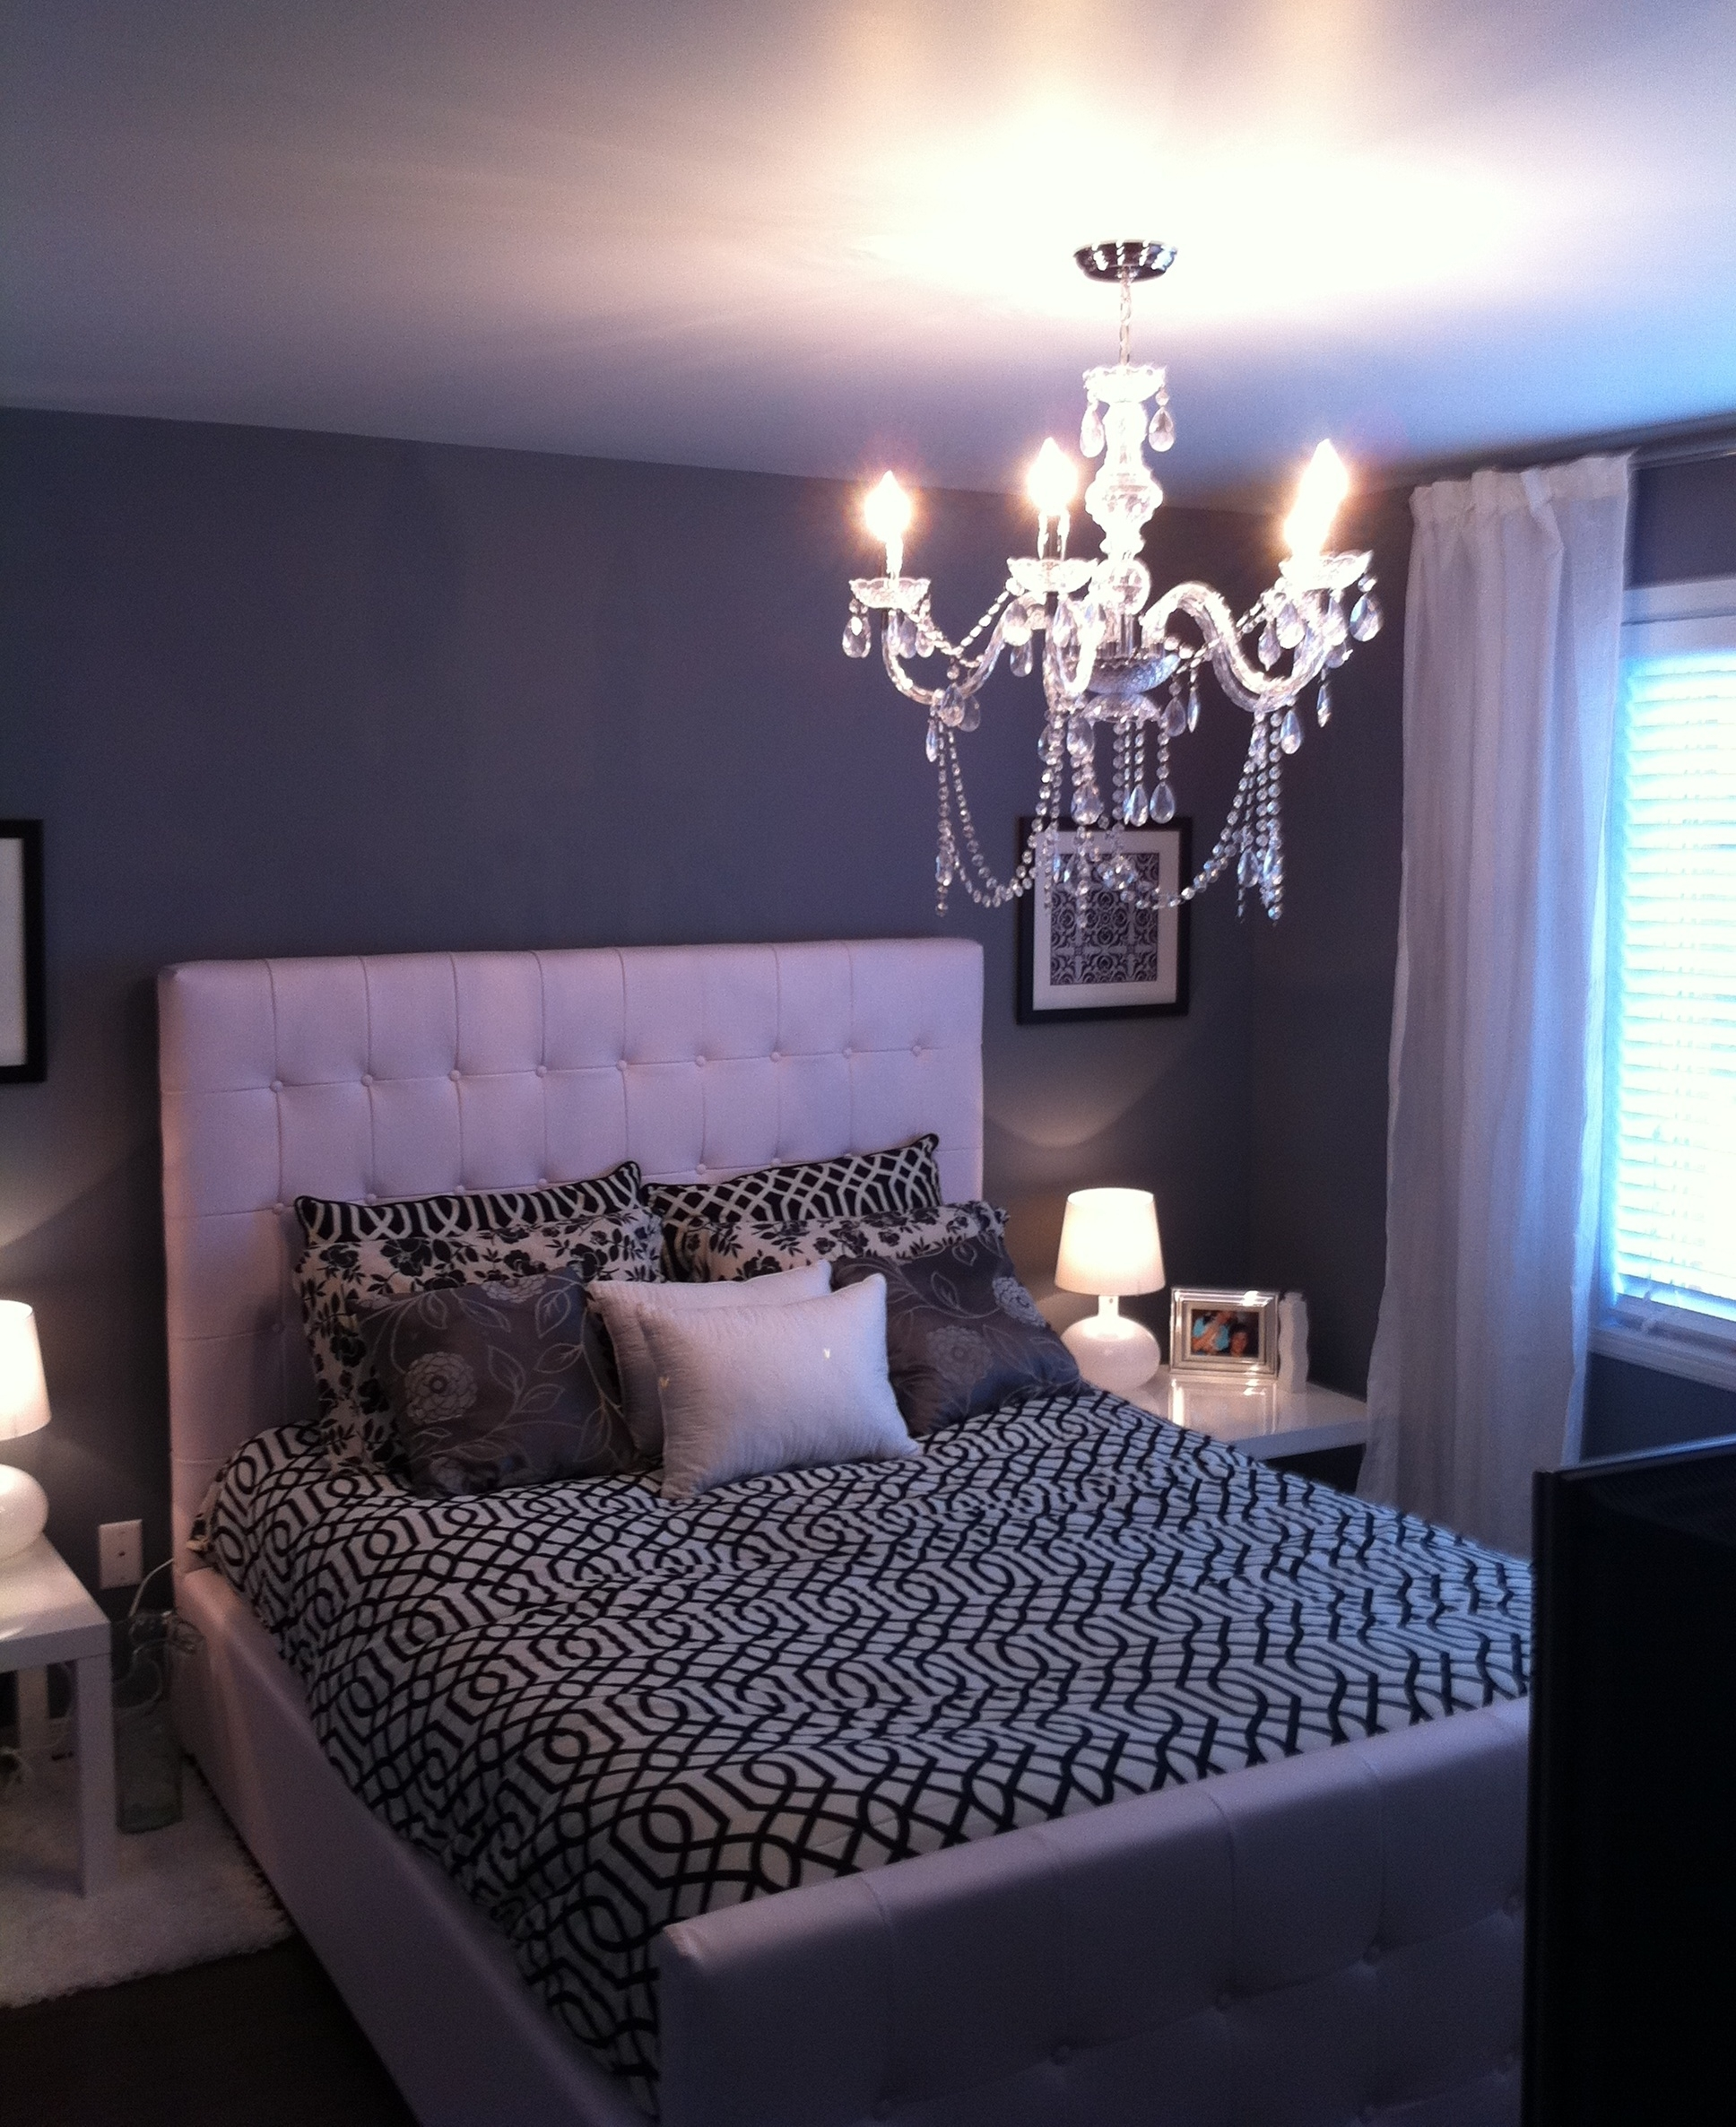 Bedroom Chandeliers Throughout Latest Chandelier (View 7 of 20)